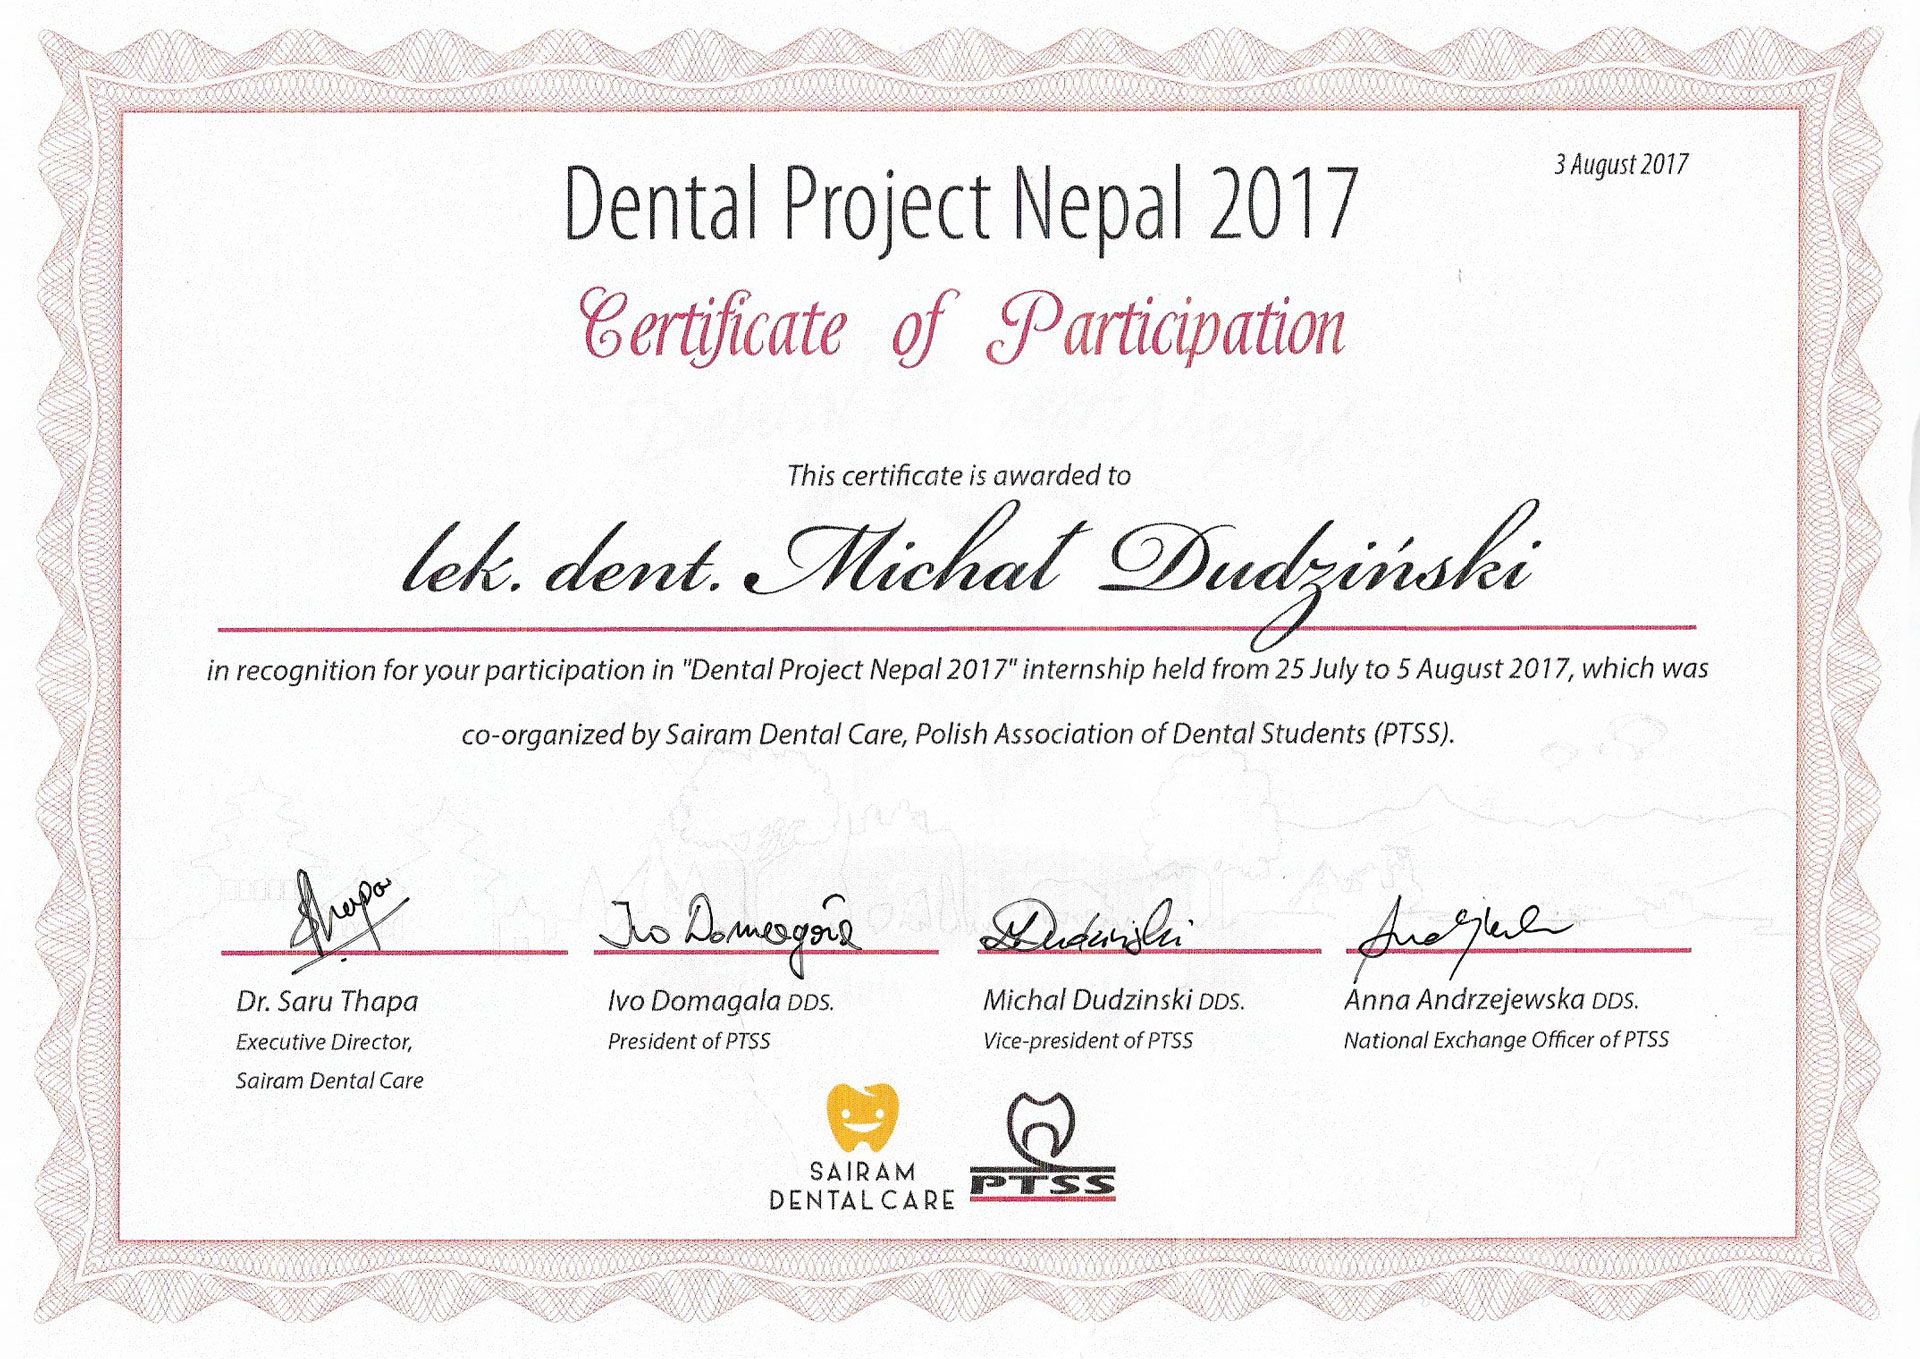 Dental Project Nepal 2017